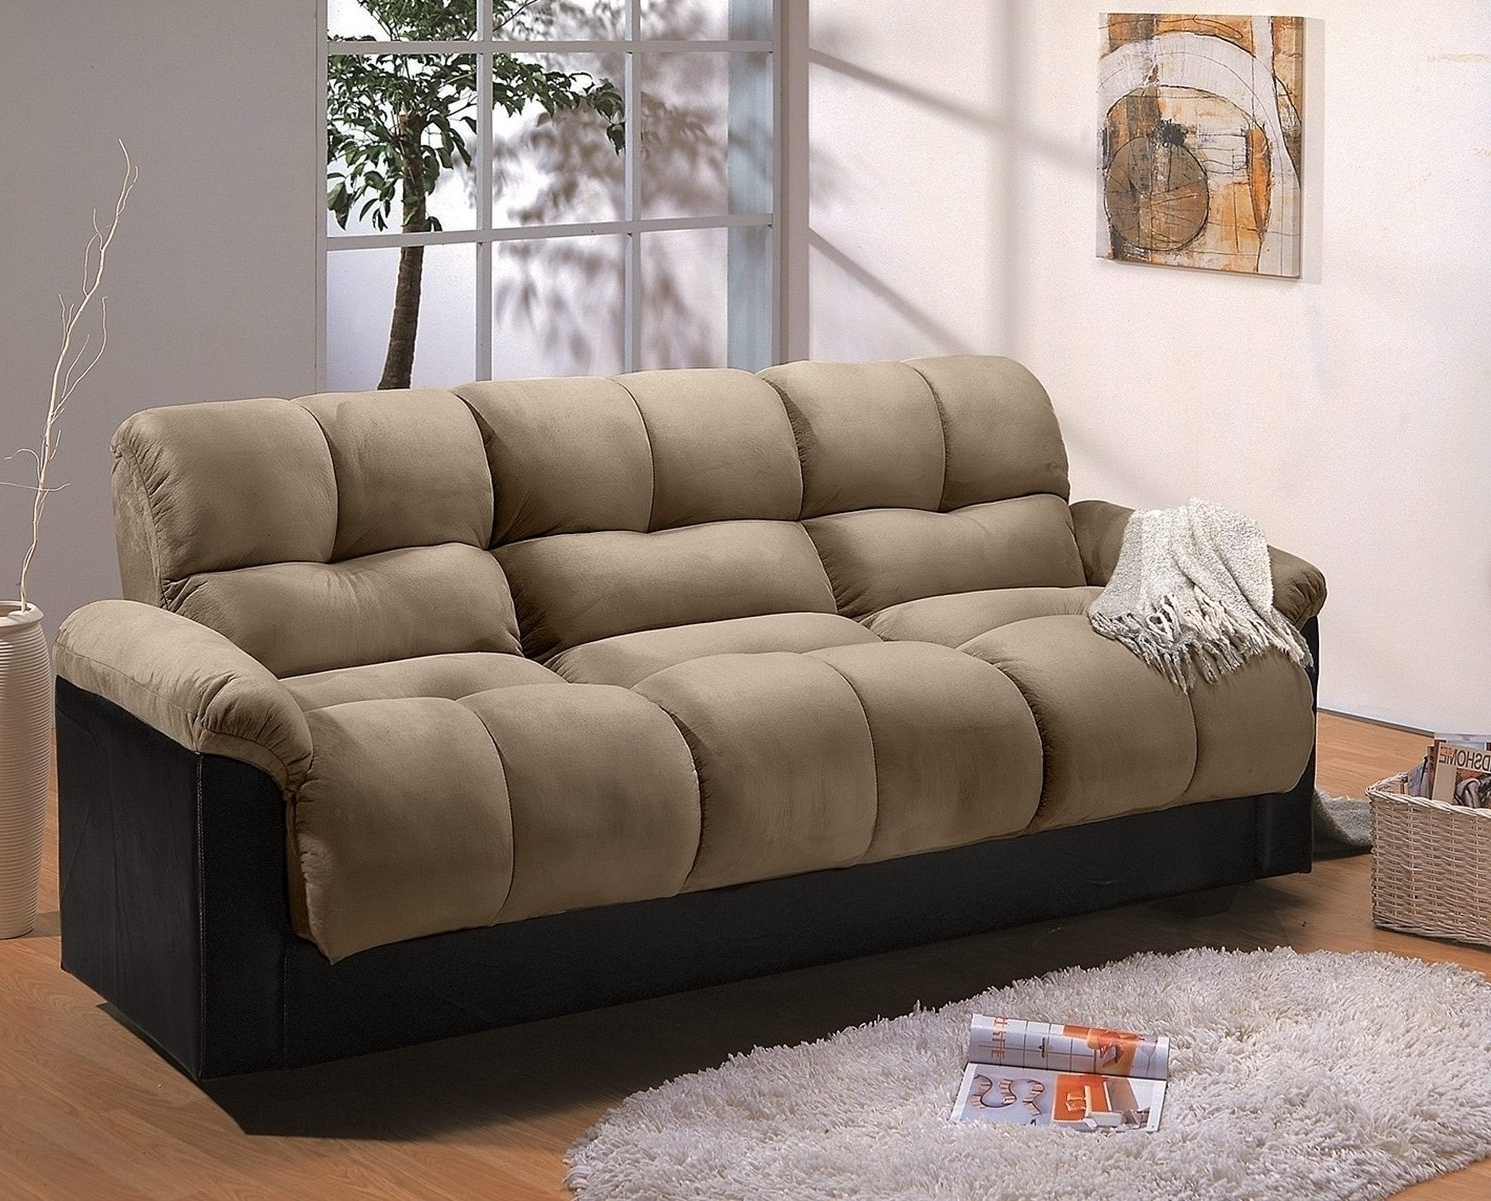 Current Grand Furniture Sectional Sofas Intended For Lazy Boy Sectional Sofa Grand Home Furnishings — The Home Redesign (View 2 of 20)